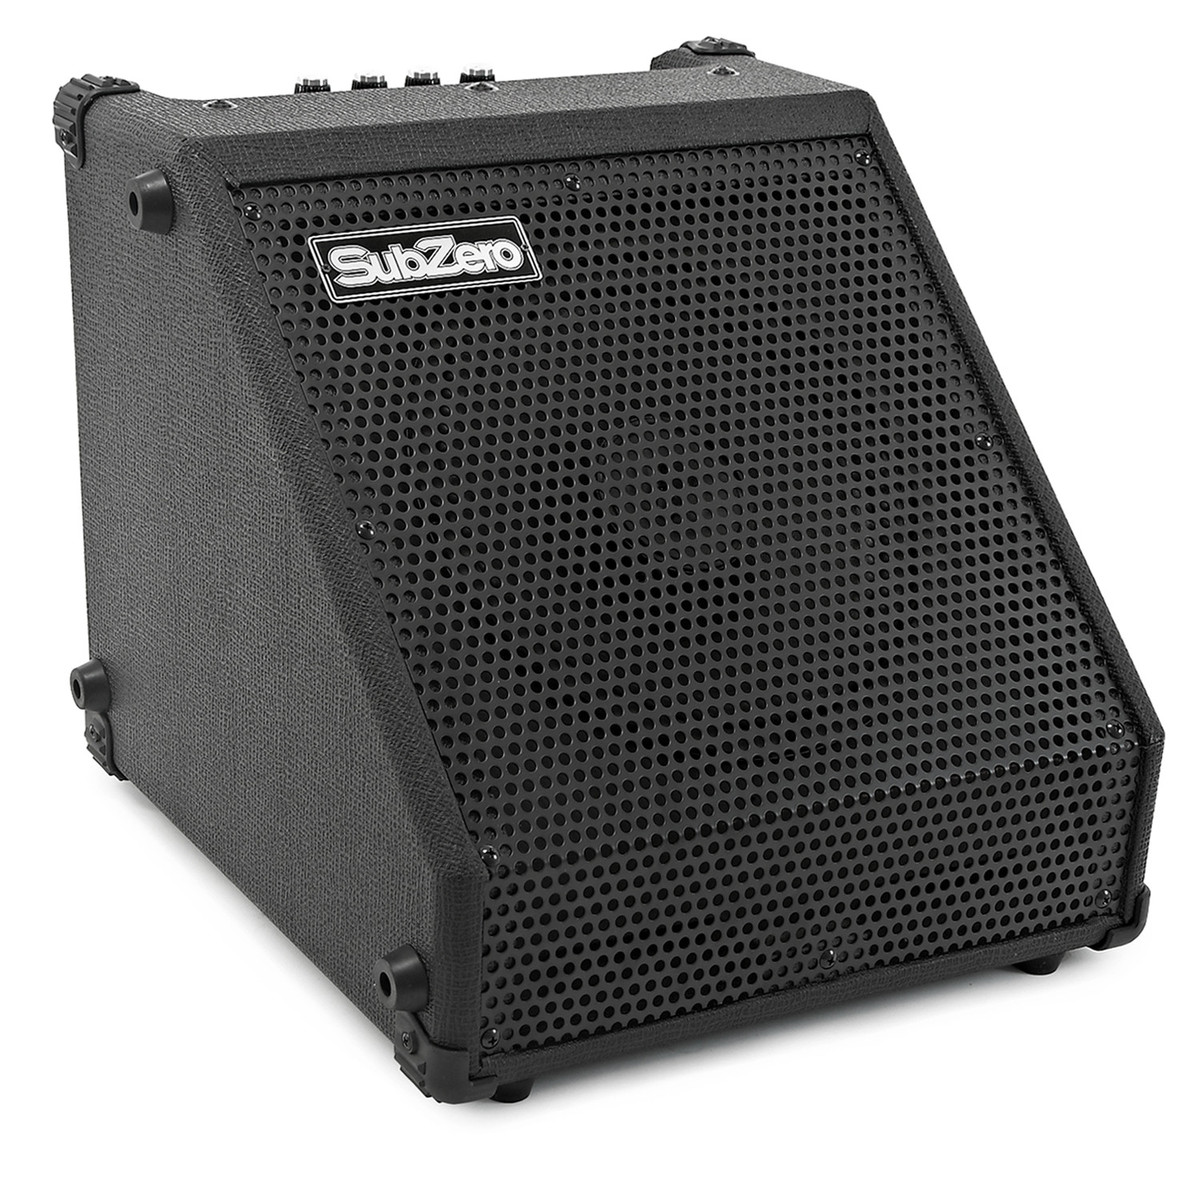 subzero dr 30 drum keyboard amp by gear4music b stock at gear4music. Black Bedroom Furniture Sets. Home Design Ideas